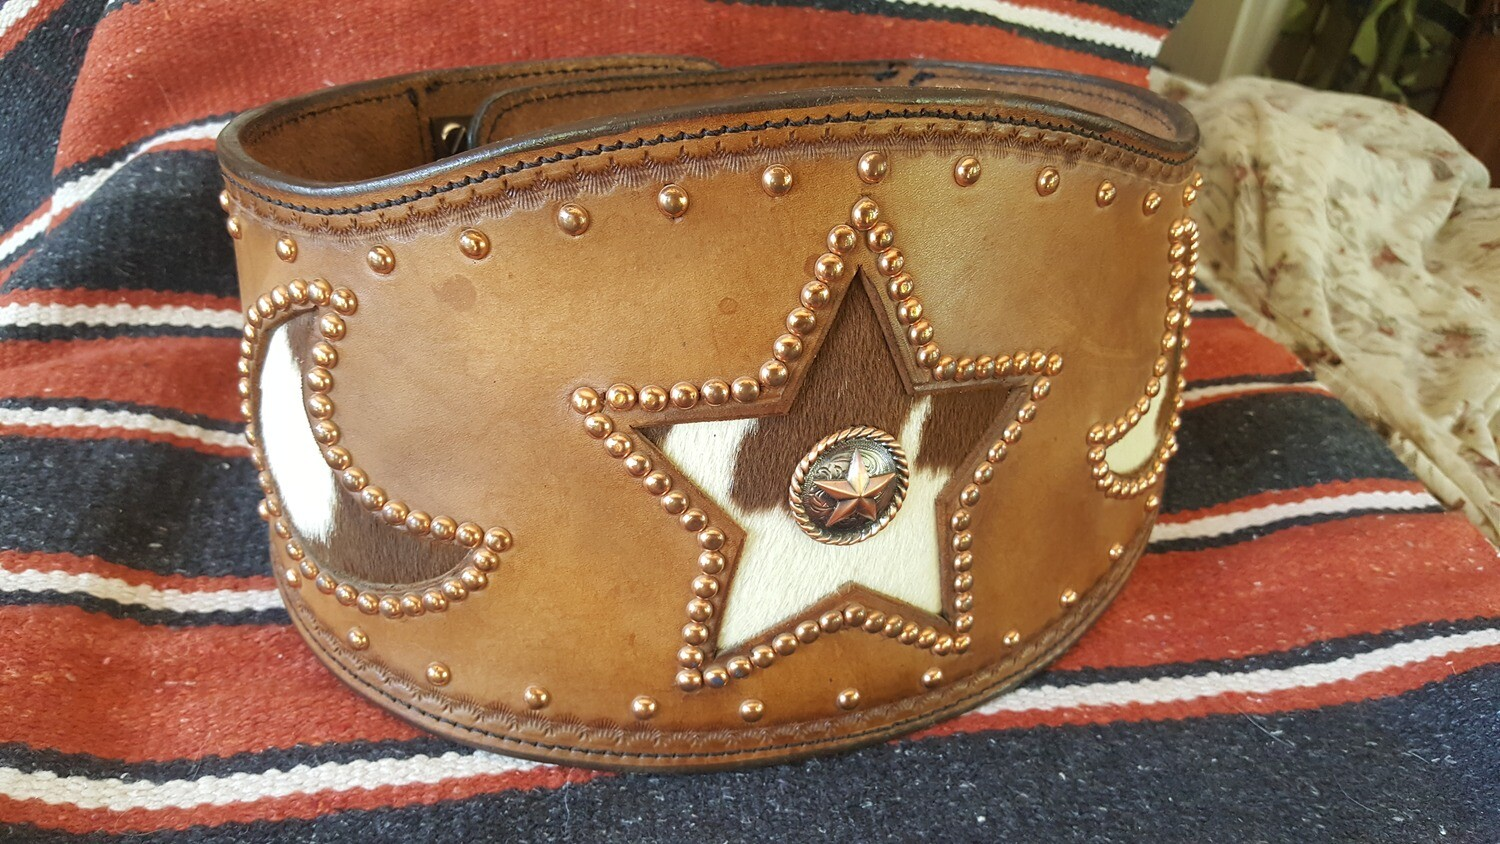 Ladies' Leather Bronco Buster Belt